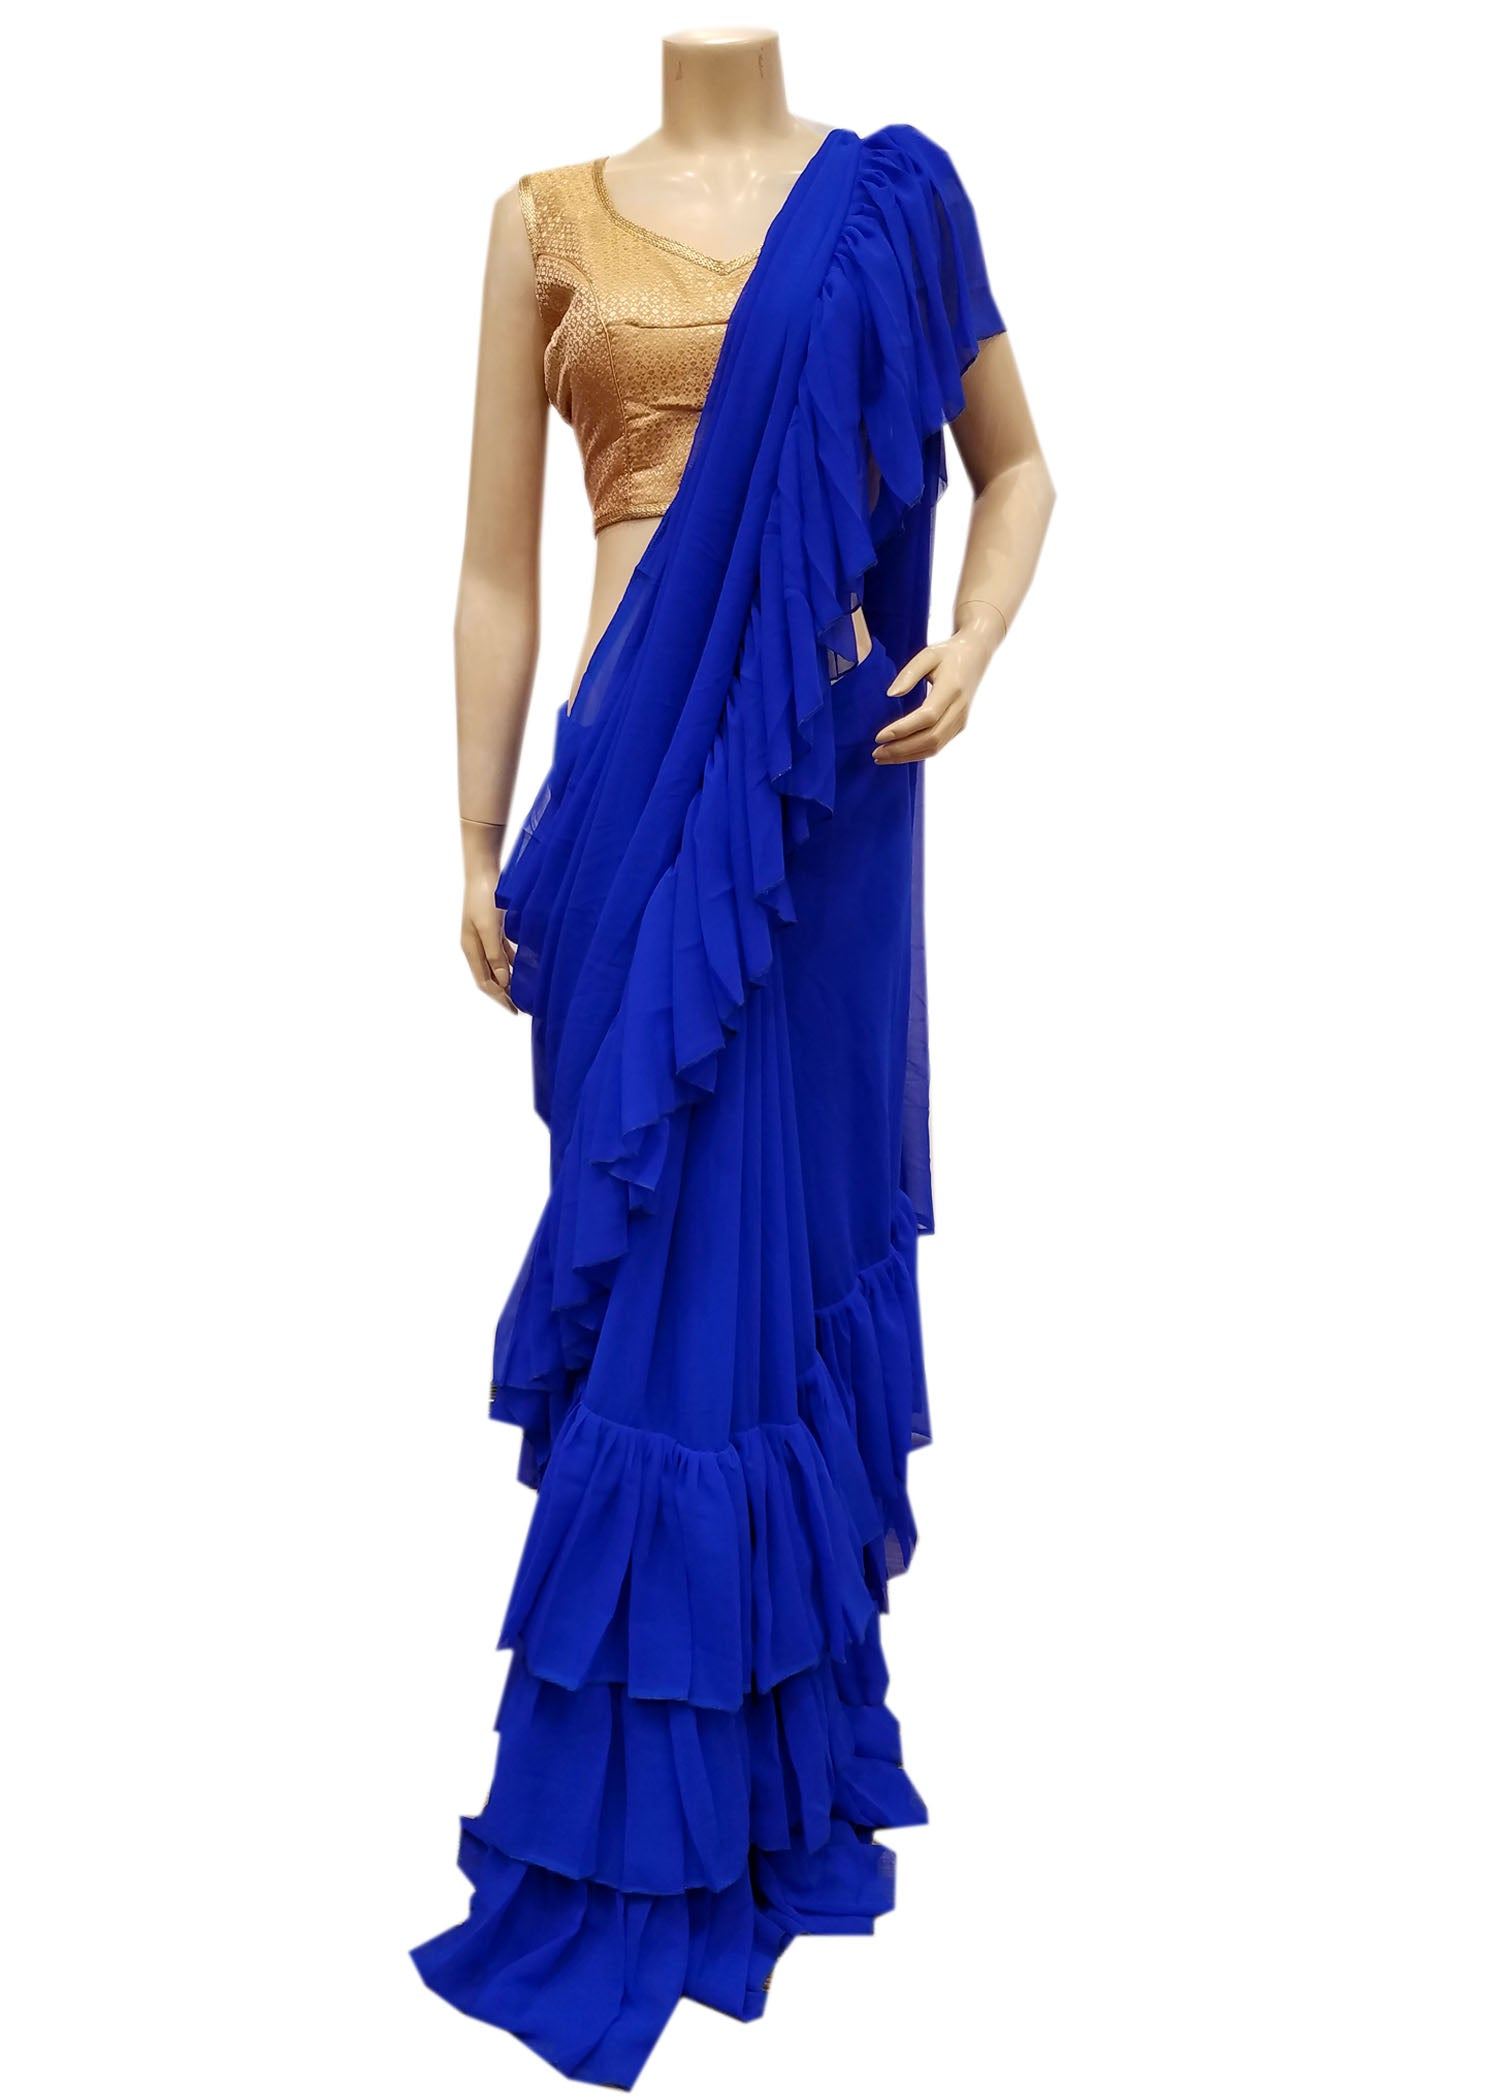 Royal Blue Saree In Georgette With Ruffle On The Border